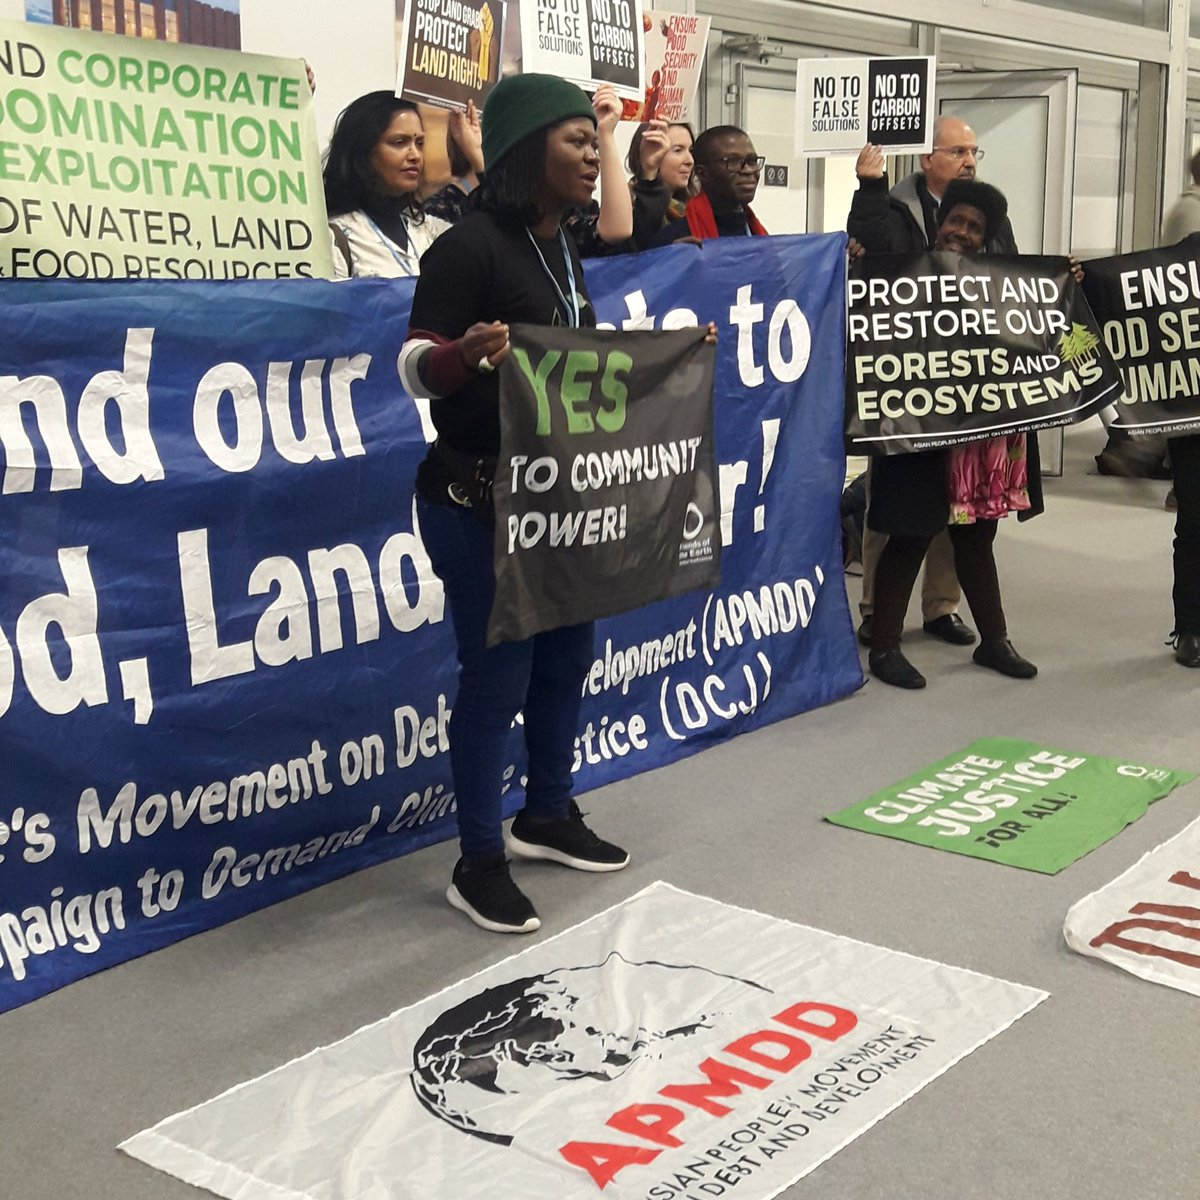 Hands off our food, land & water! Agribusiness is committing #humanrights abuses and landgrabbing. Industrial agrocommodities cannot feed the world. #Agroecology in the hands of communities is the only real solution to feed peoples and cool the planet! | @riouwaka #COP24